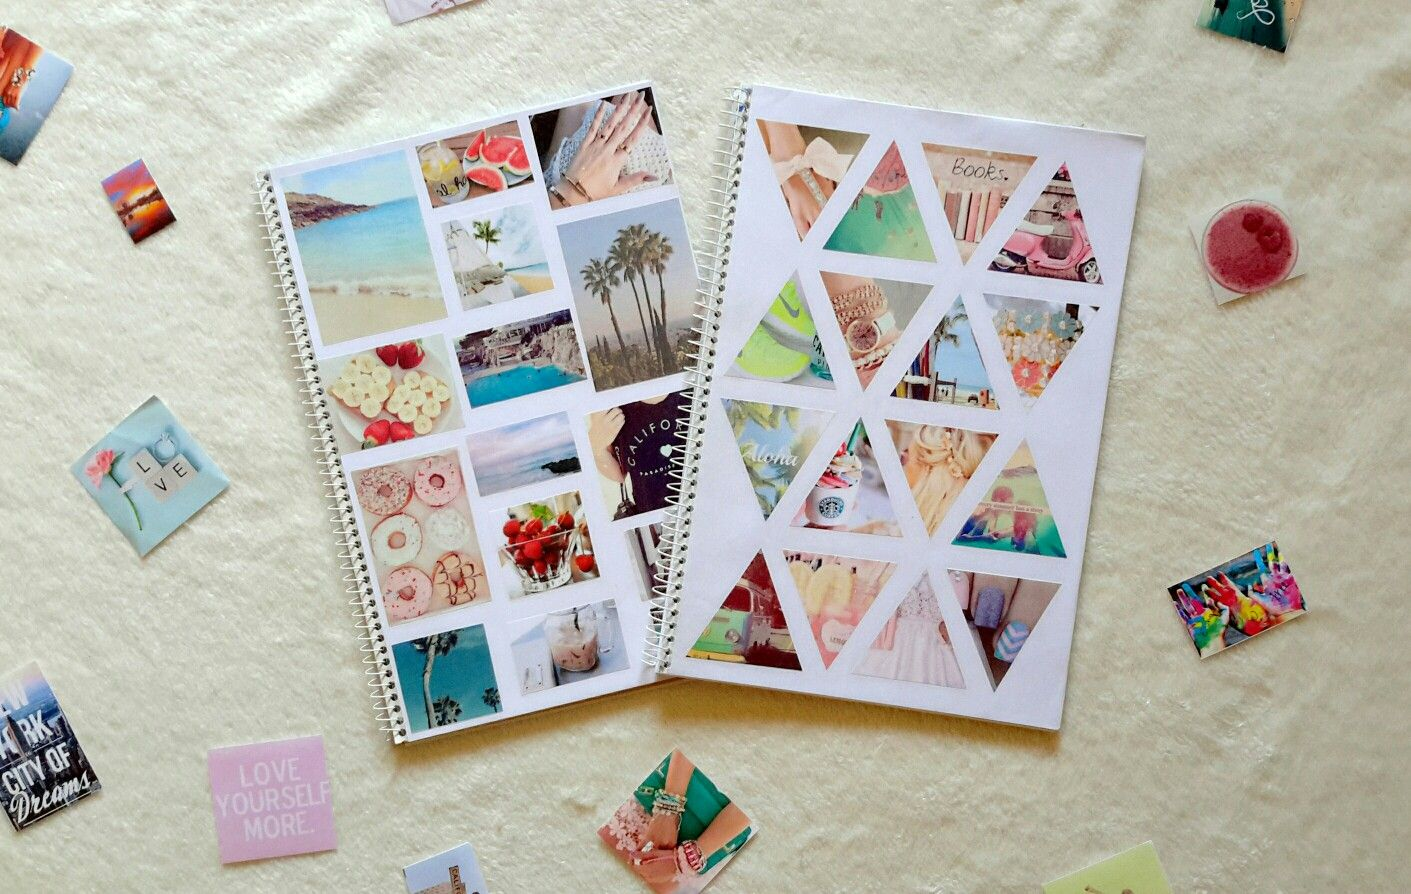 Diy tumblr notebook diy pinterest do it yourself and more diy tumblr notebook solutioingenieria Images